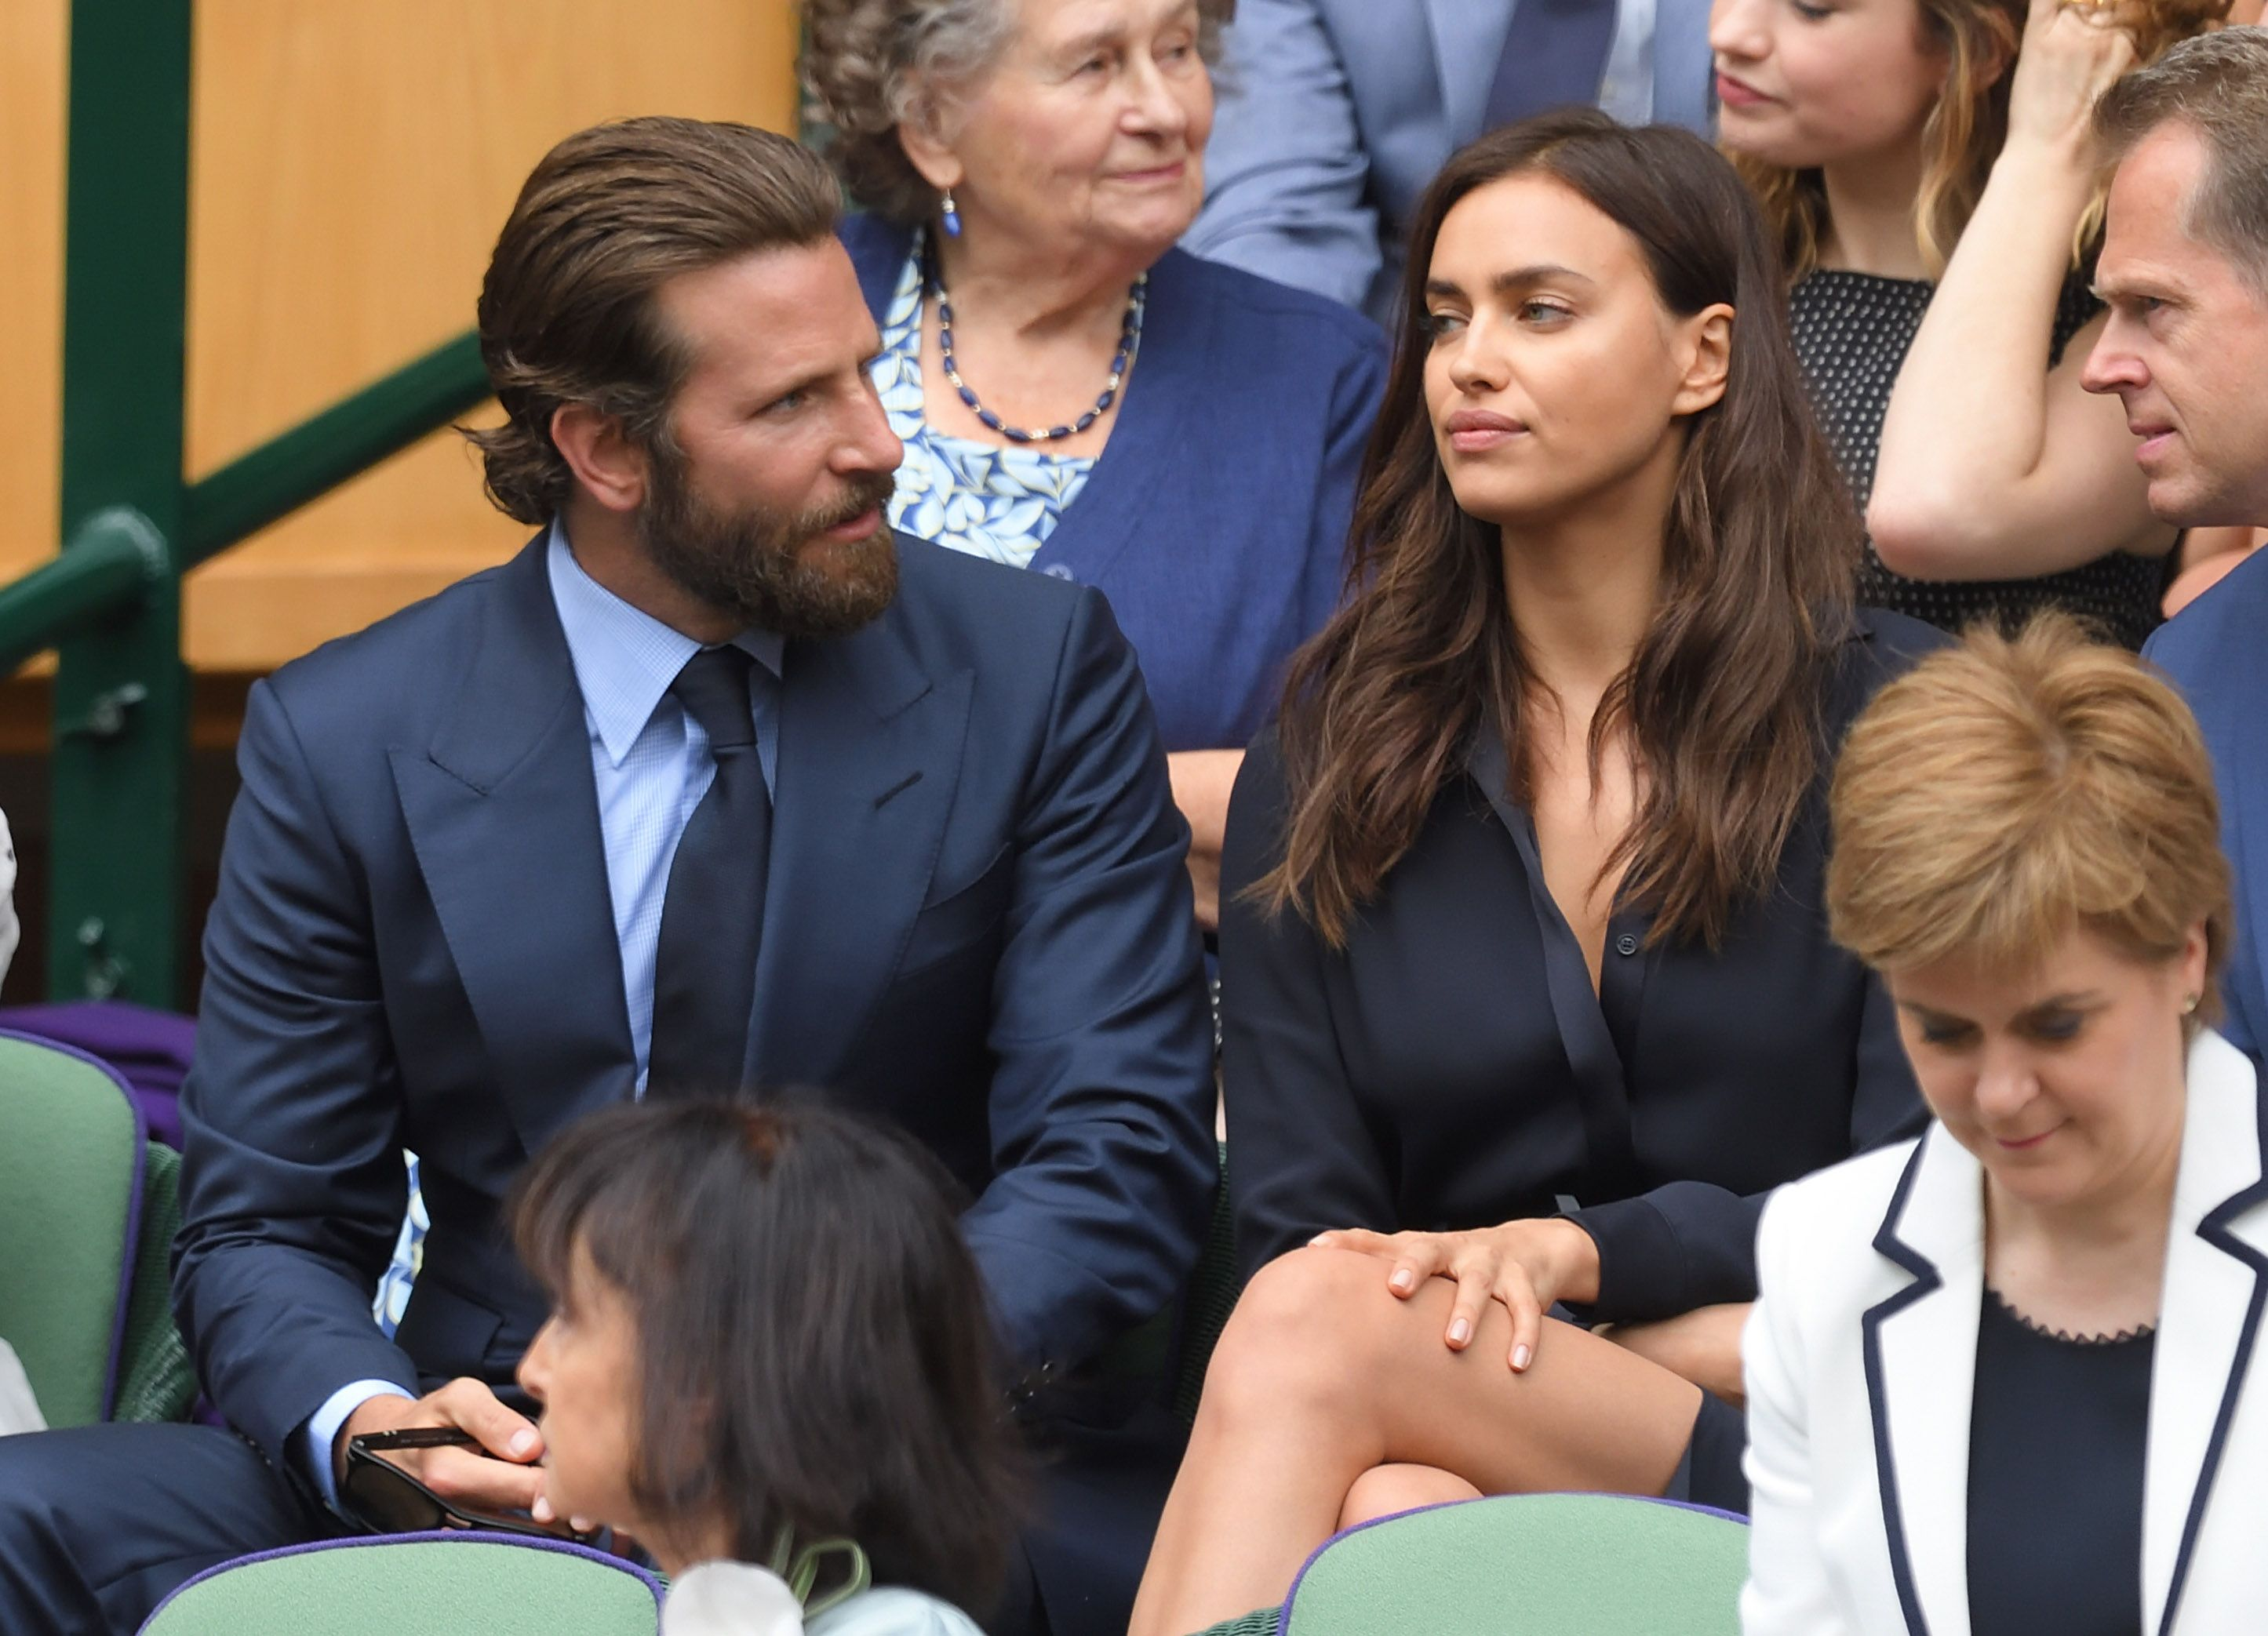 So It Looks Like Irina Shayk Was Actually the One Who Dumped Bradley Cooper